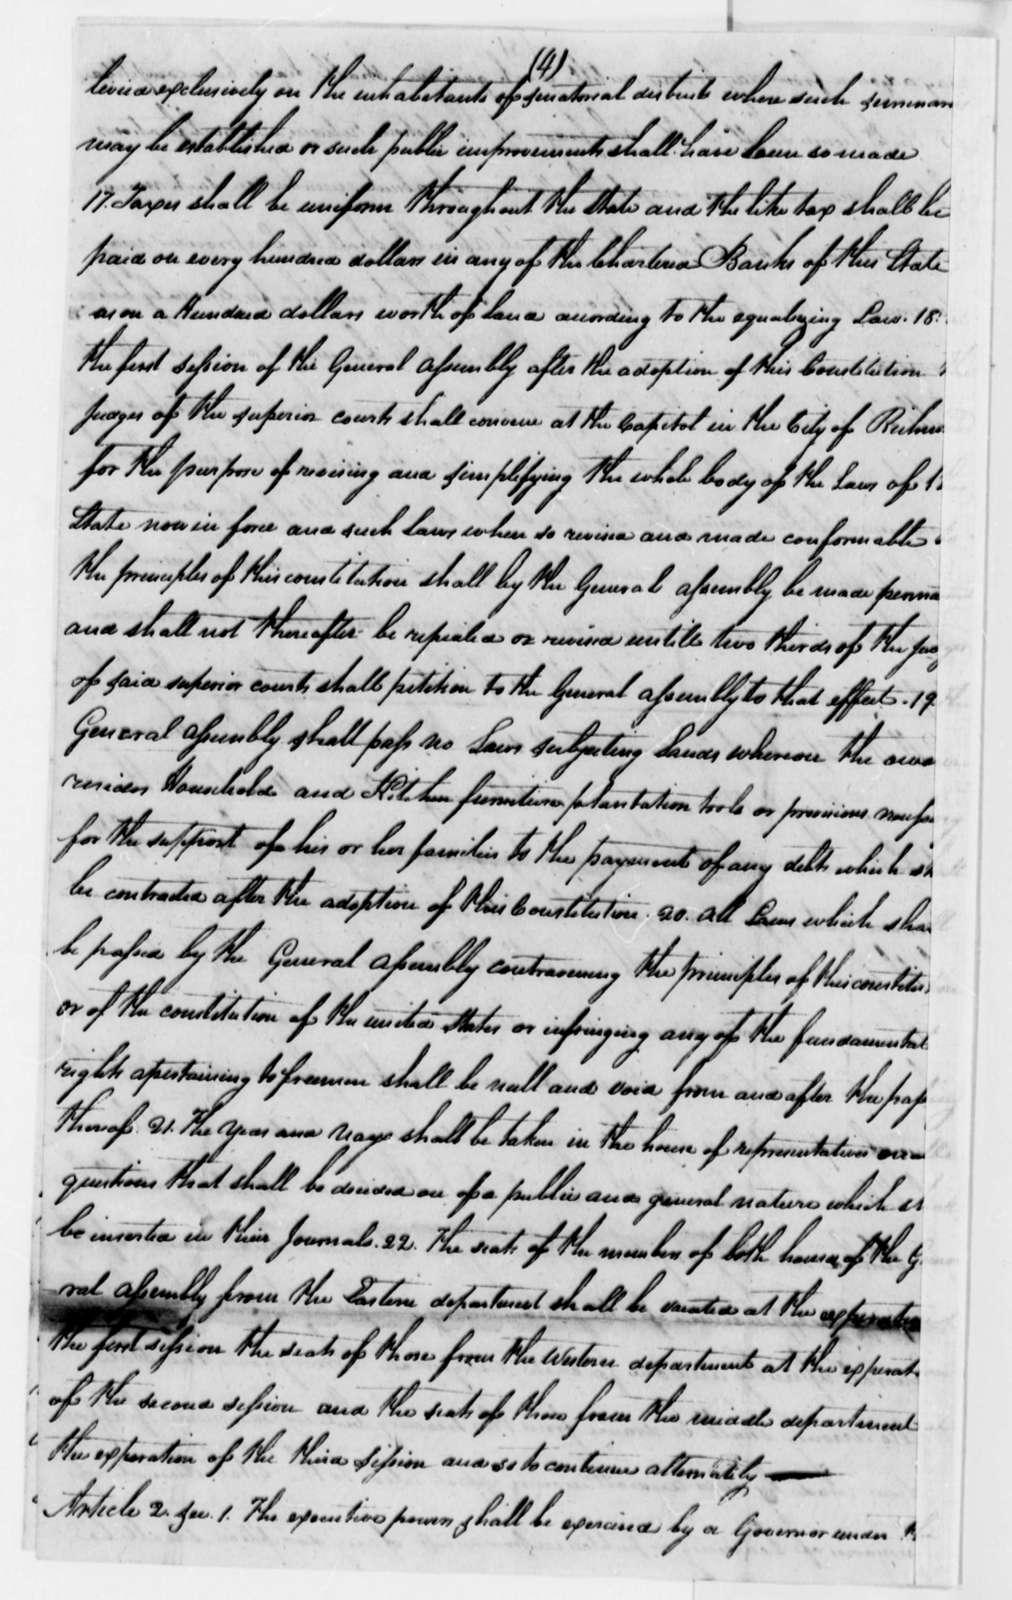 James S. Gaines to Thomas Jefferson, September 3, 1811, with Plan